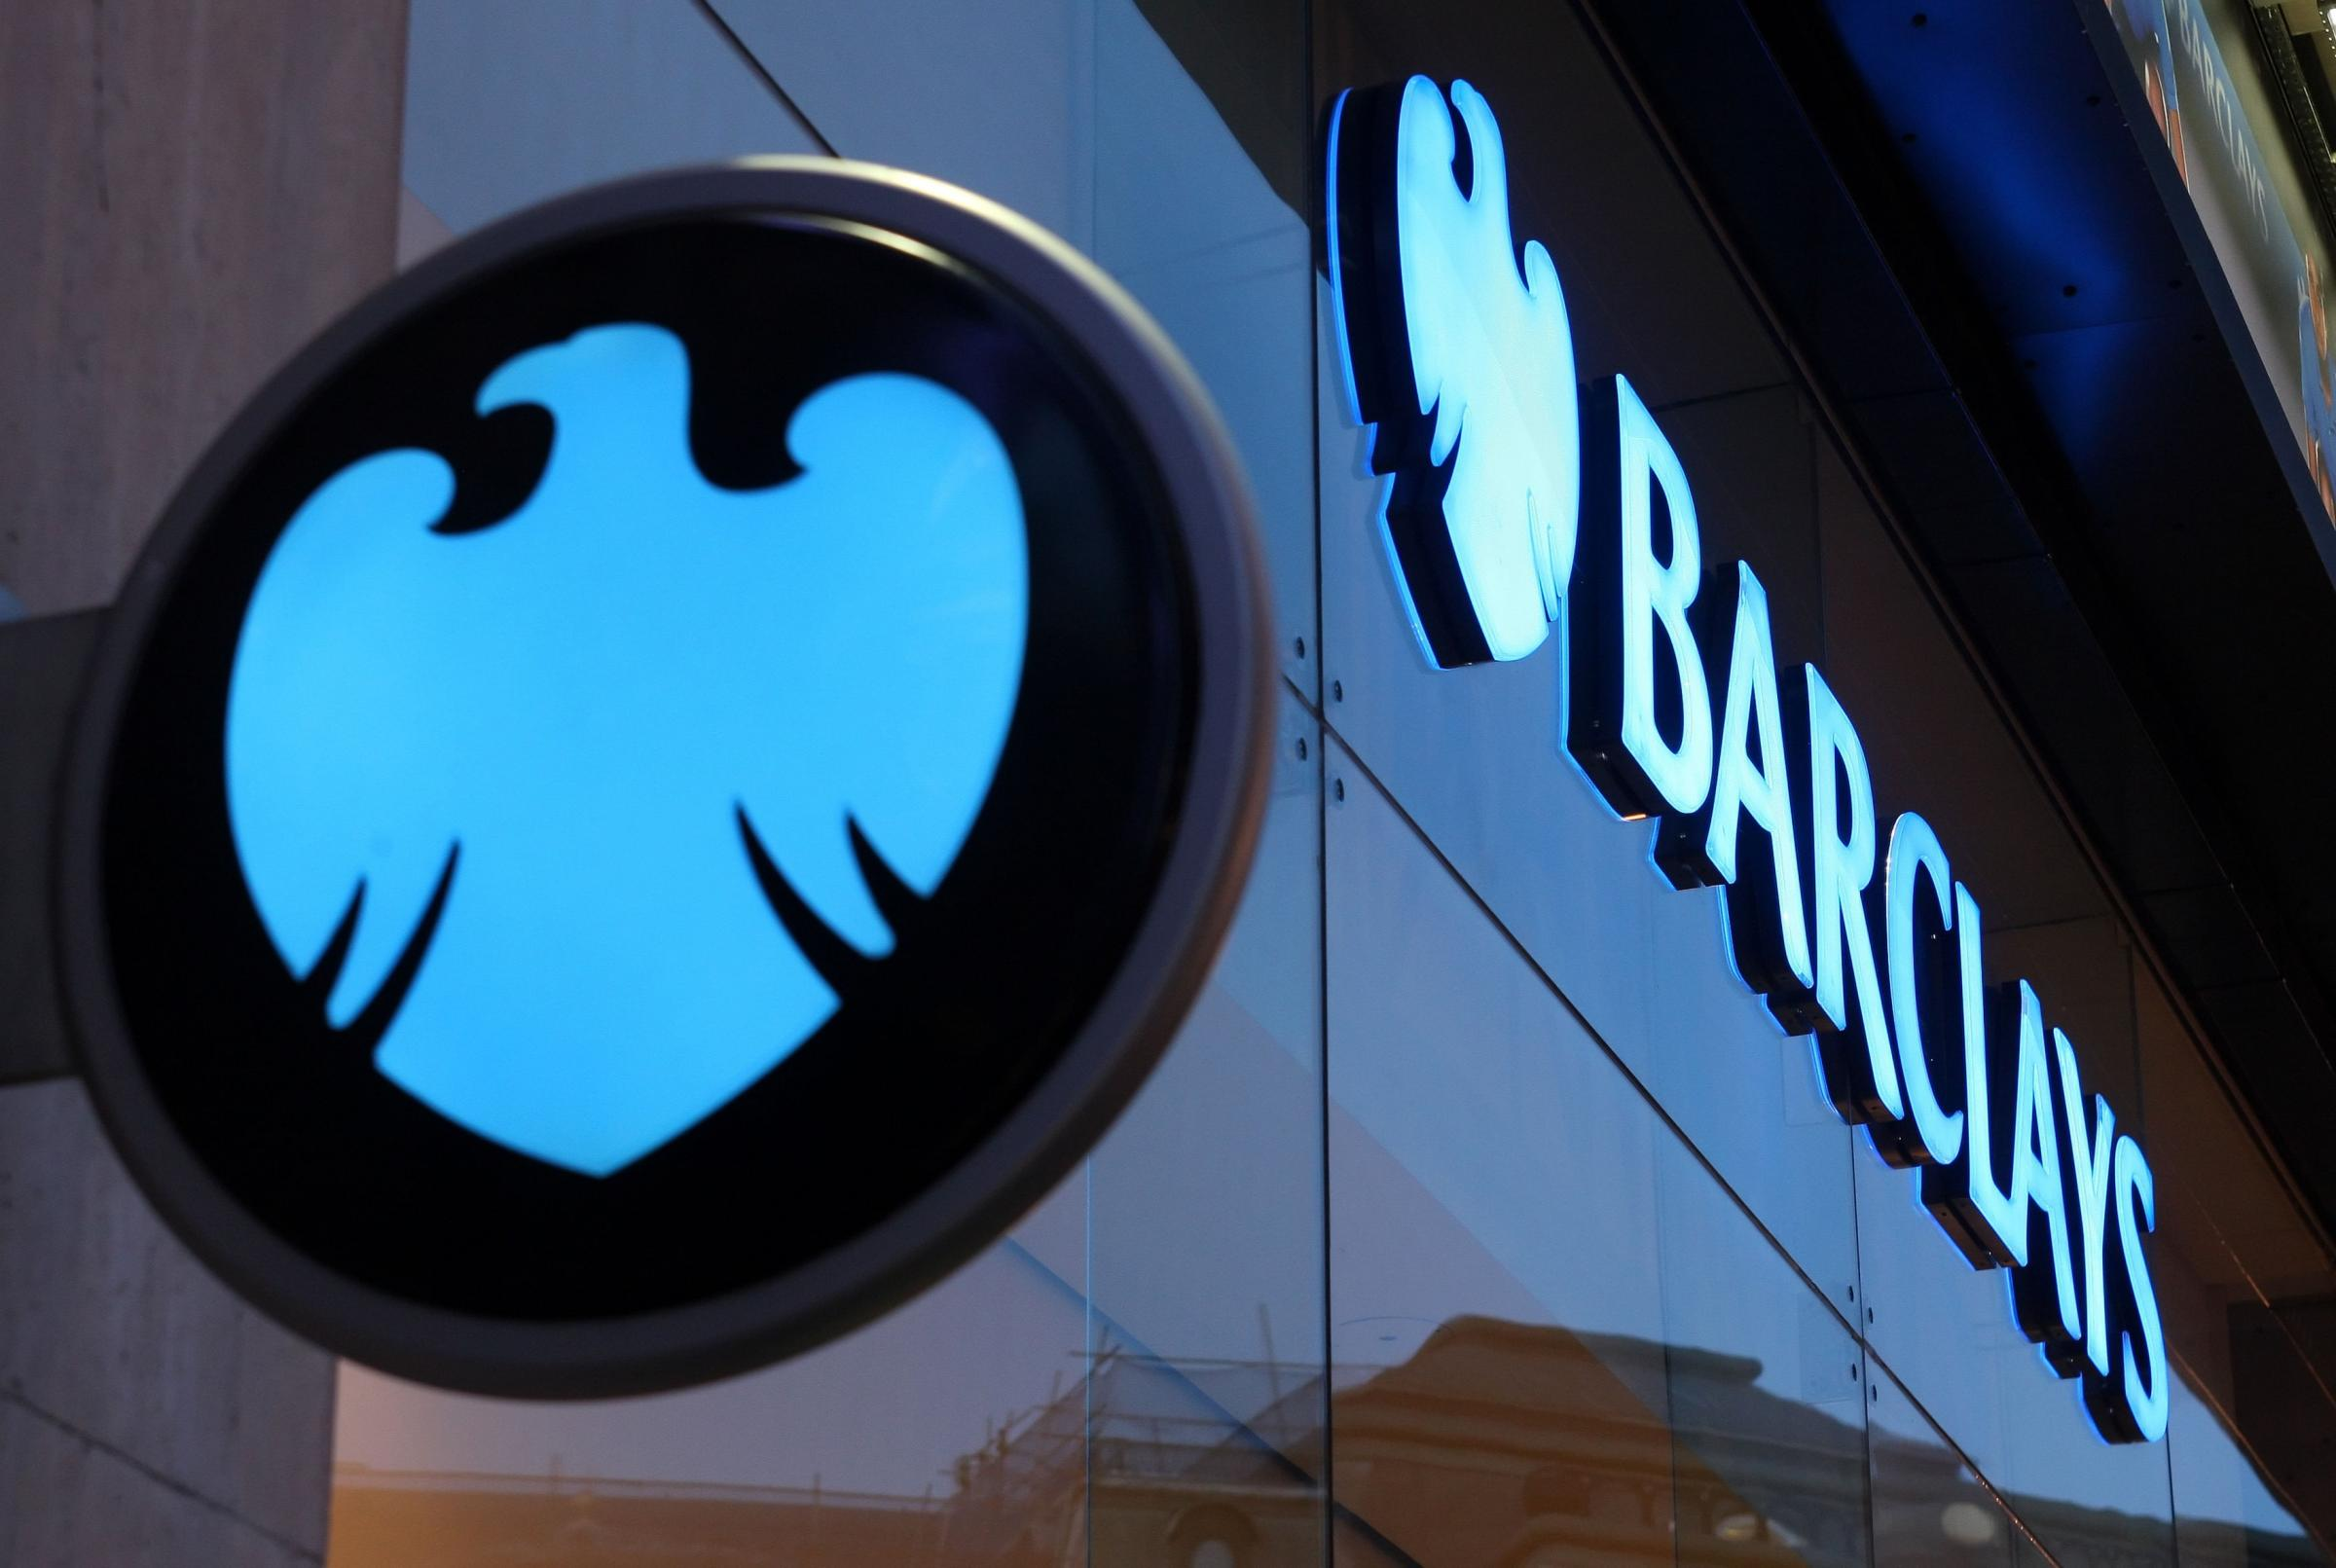 Barclays online and telephone banking services go down in 'technical hitch'